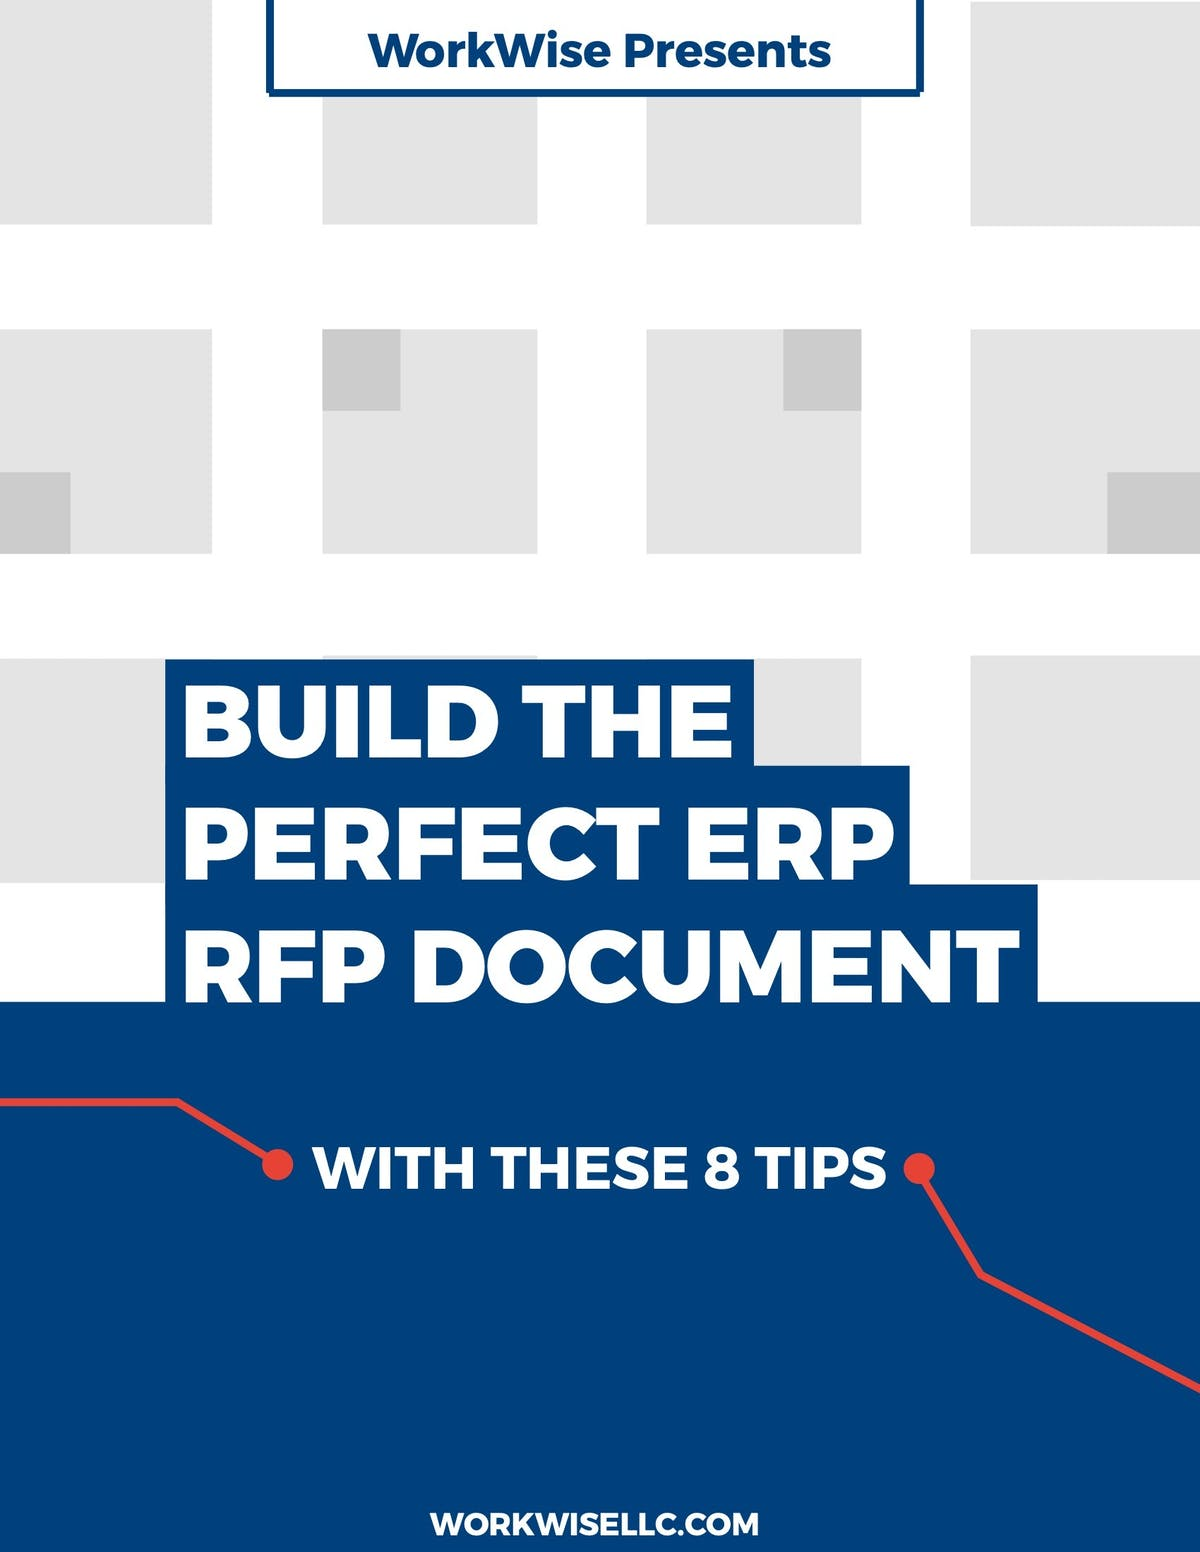 WorkWise ERP White Paper - Build the Perfect ERP RFP Document